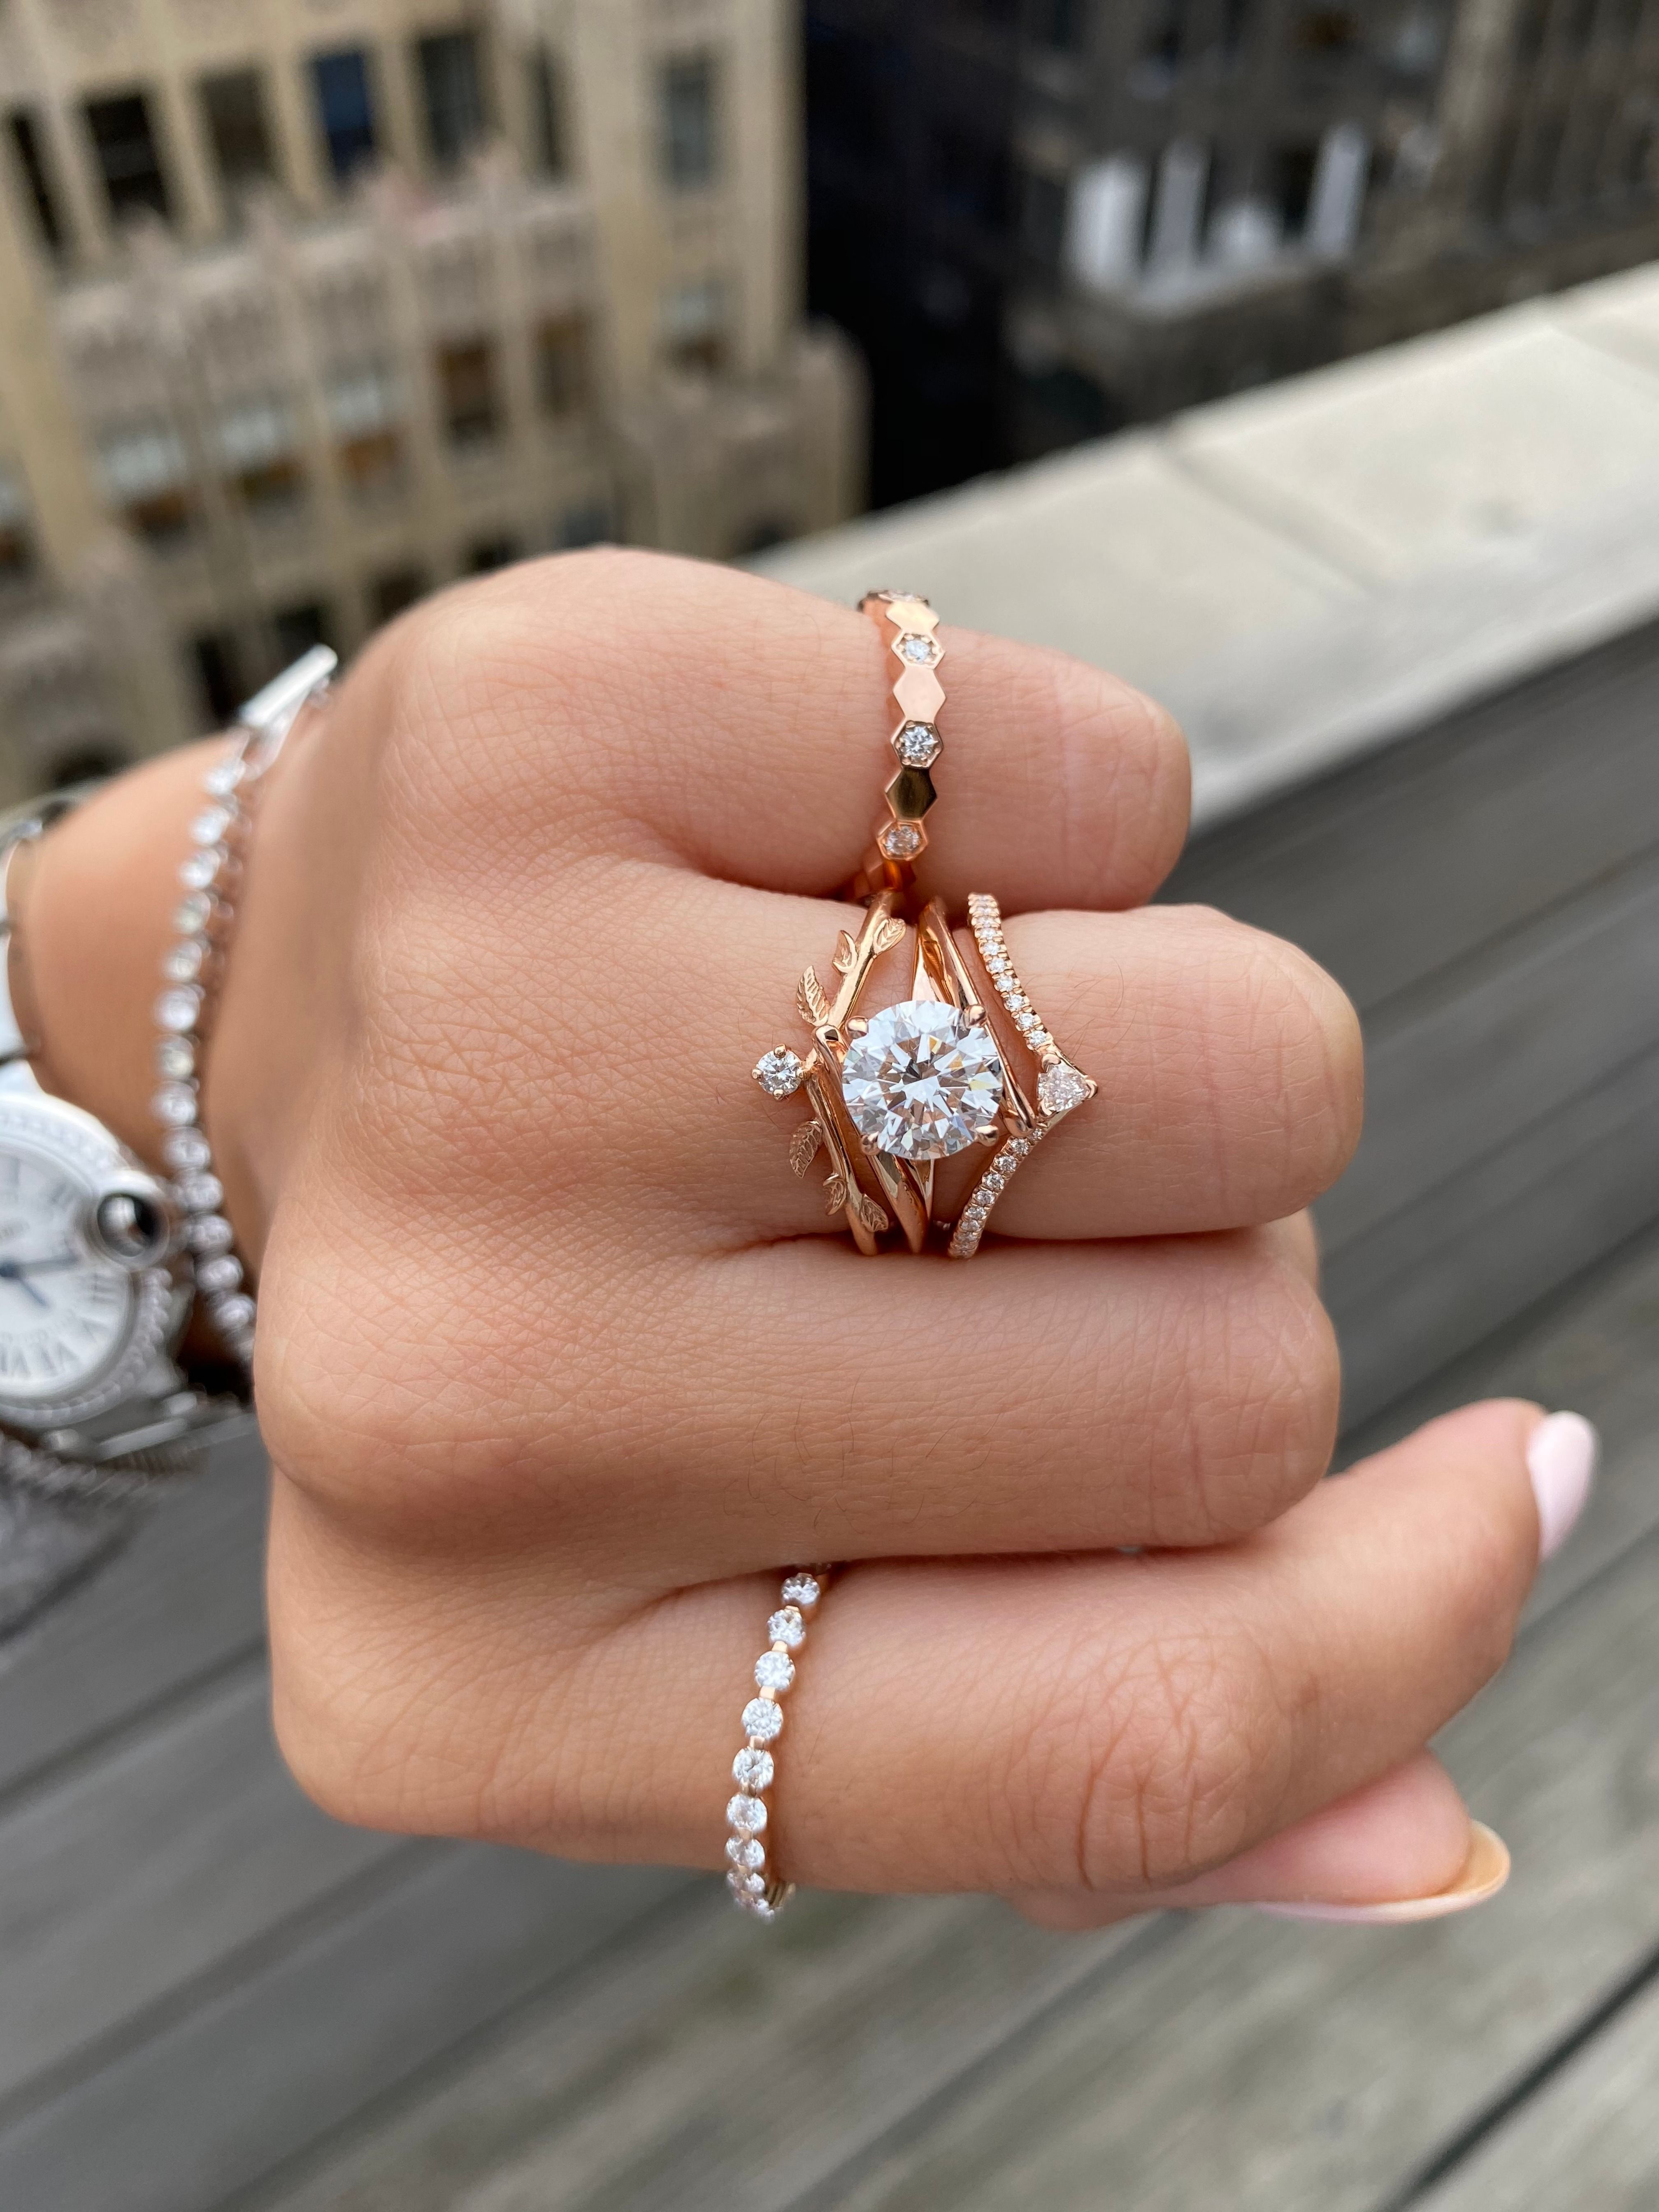 Princess Kylie Round Cubic Zirconia Designer 3 Piece Bridal Ring Set Rhodium Plated Sterling Silver